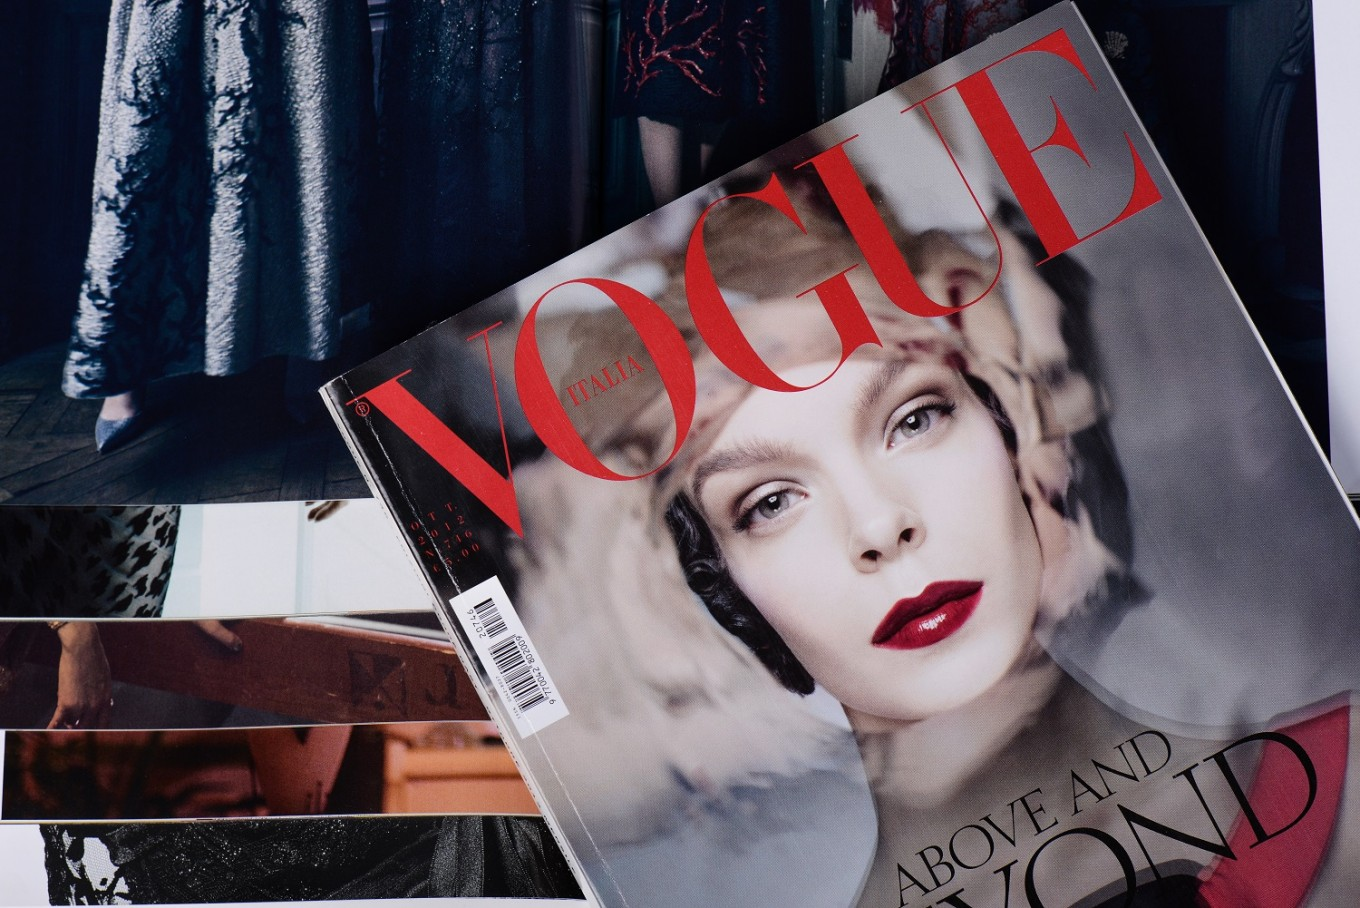 Vogue releases hardcover book on food